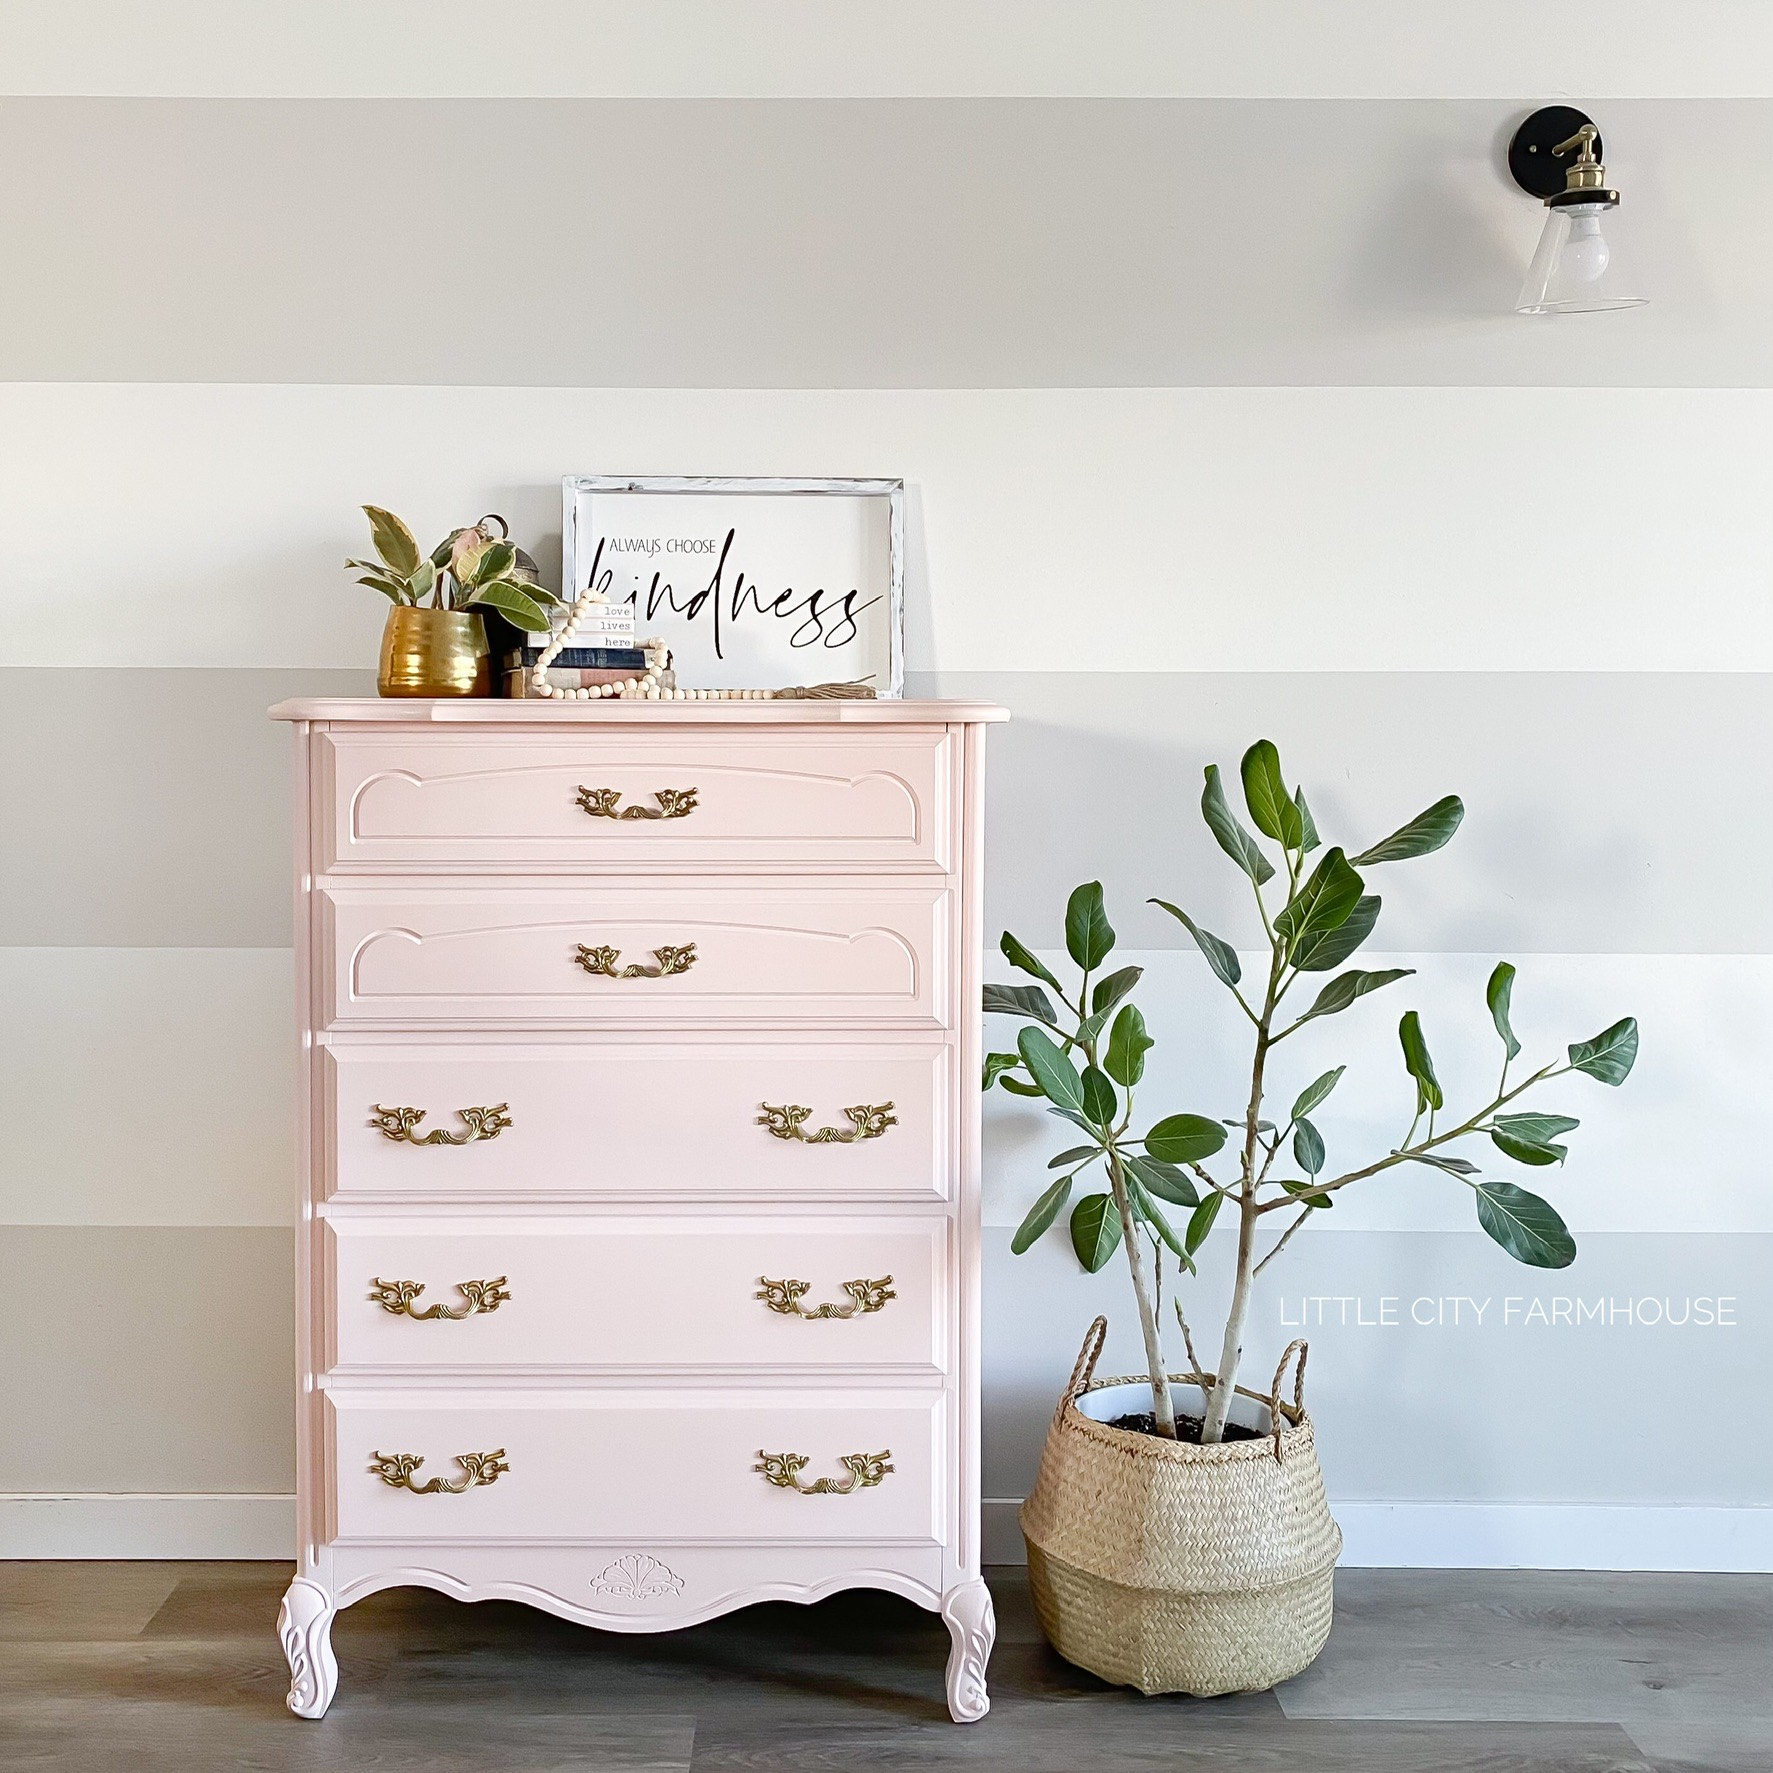 Tall French Provincial Dresser in Ooh La La with Gold Hardware